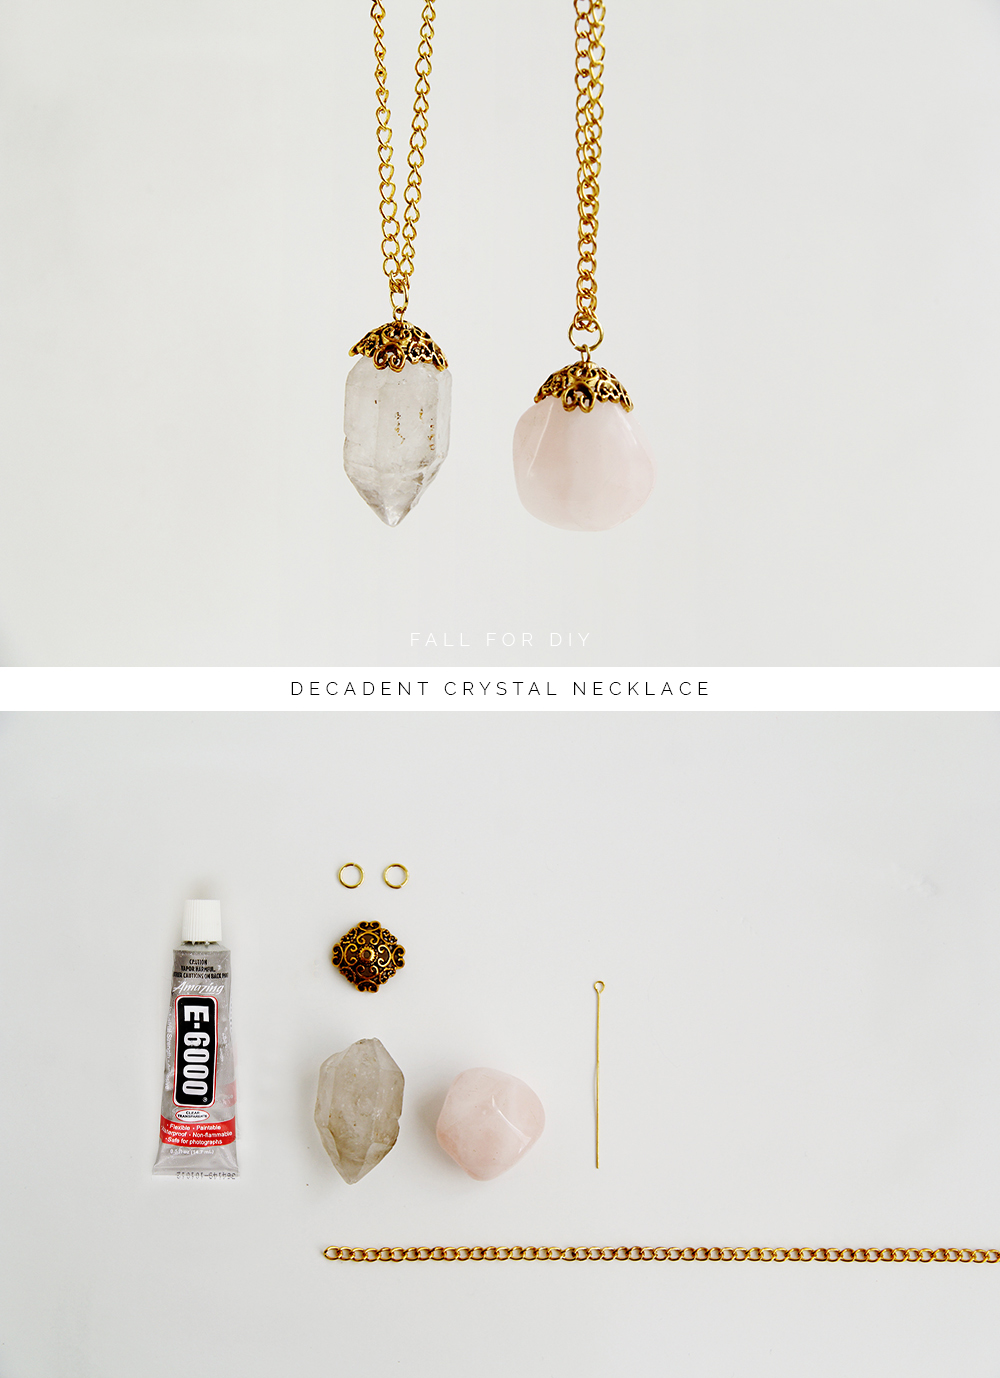 Diy decadent crystal necklace fall for diy for How to make rock jewelry